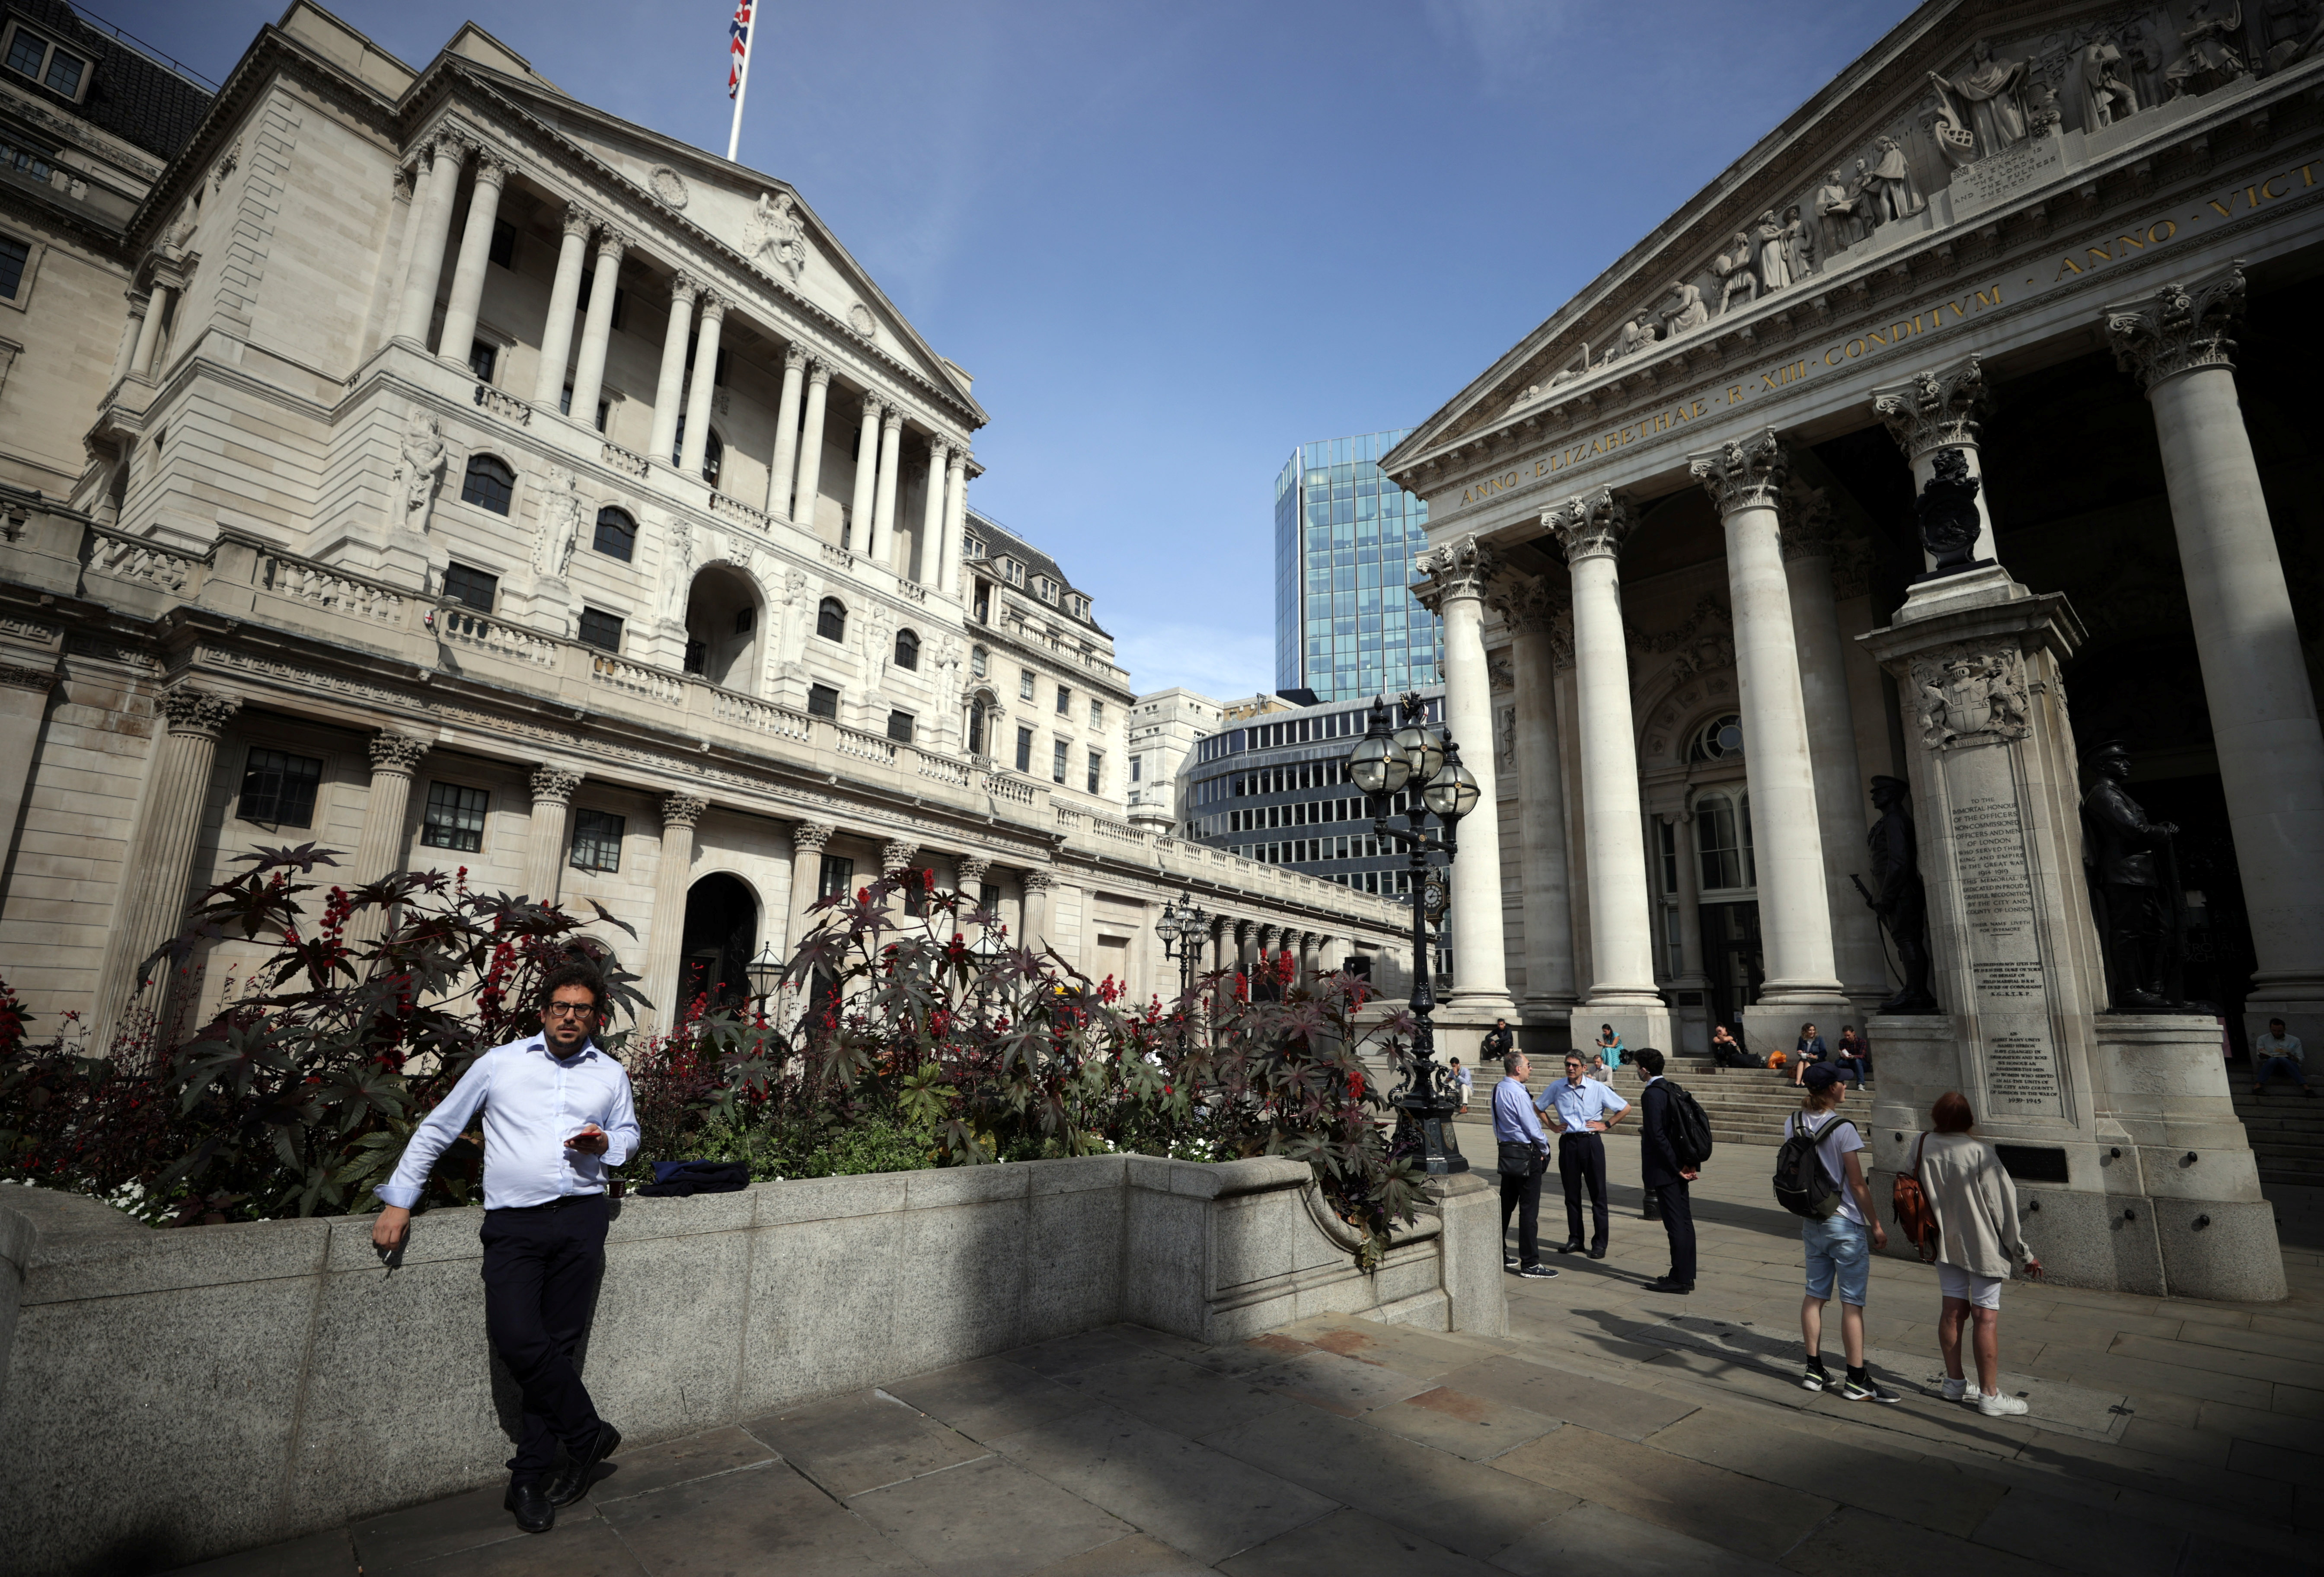 A person stands outside the Bank of England in London, Britain, September 13, 2021. REUTERS/Hannah McKay